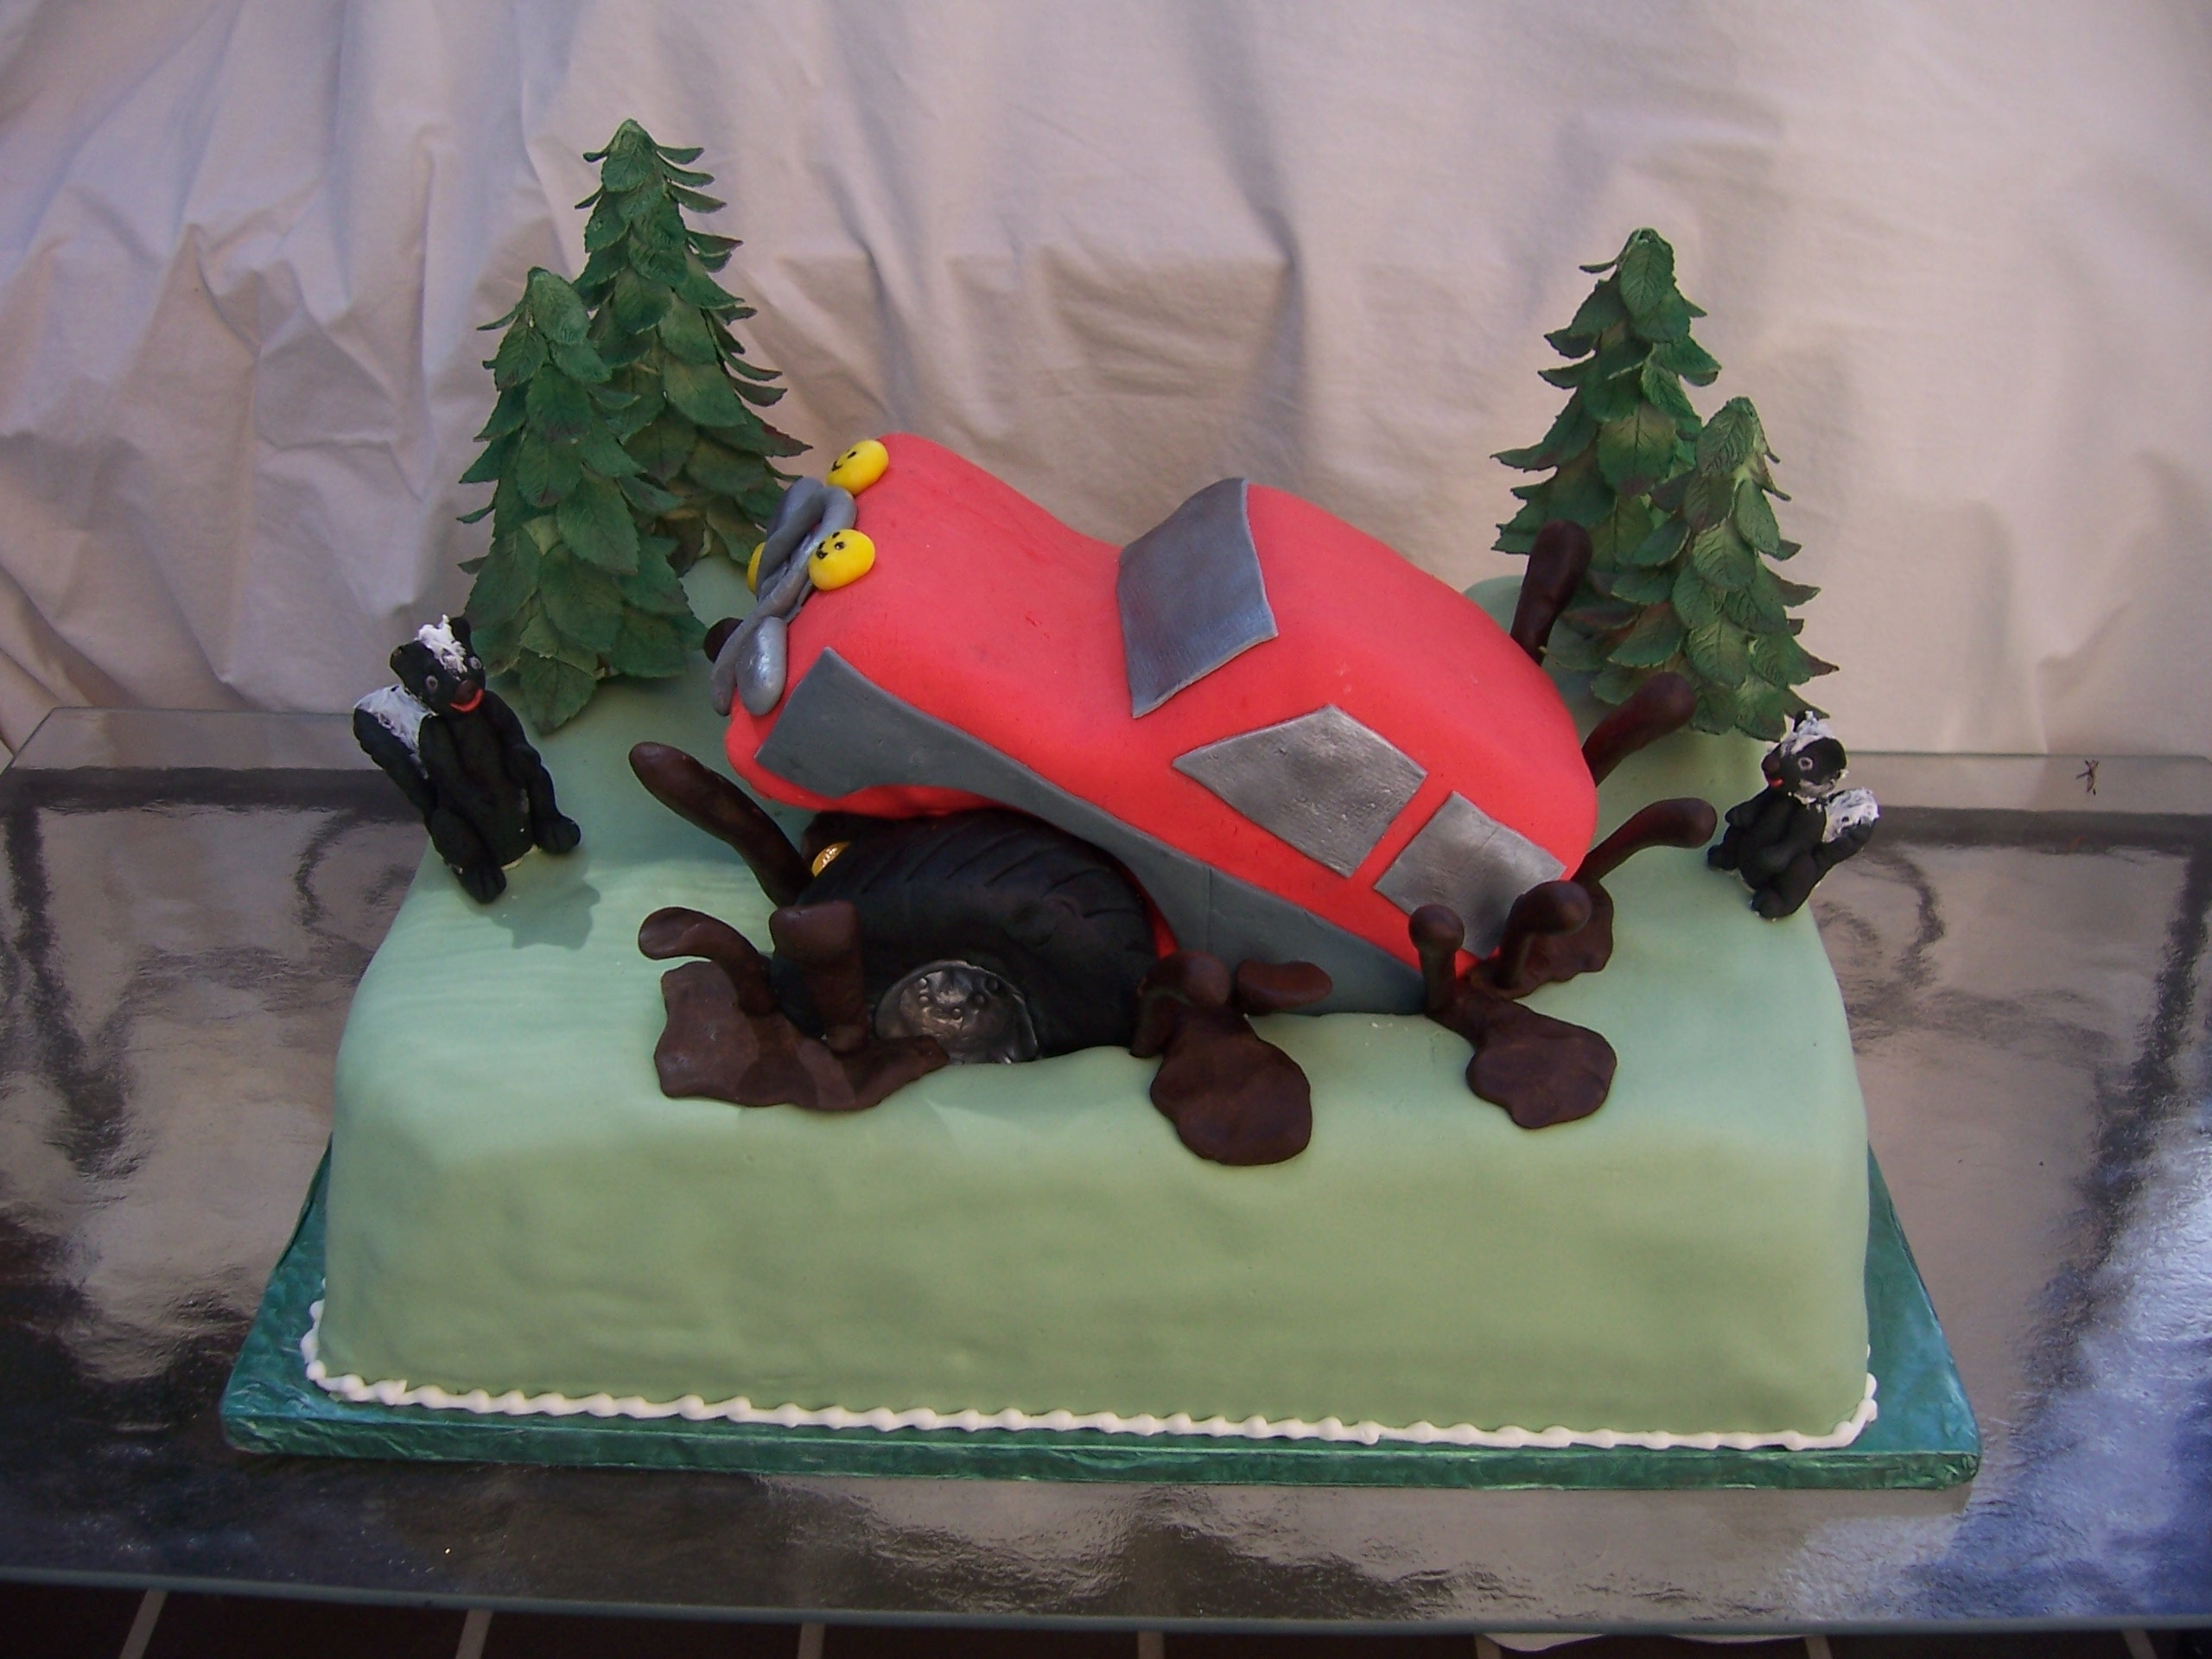 Groom S Cake With Off Road Truck In Chocolate Mud Main View